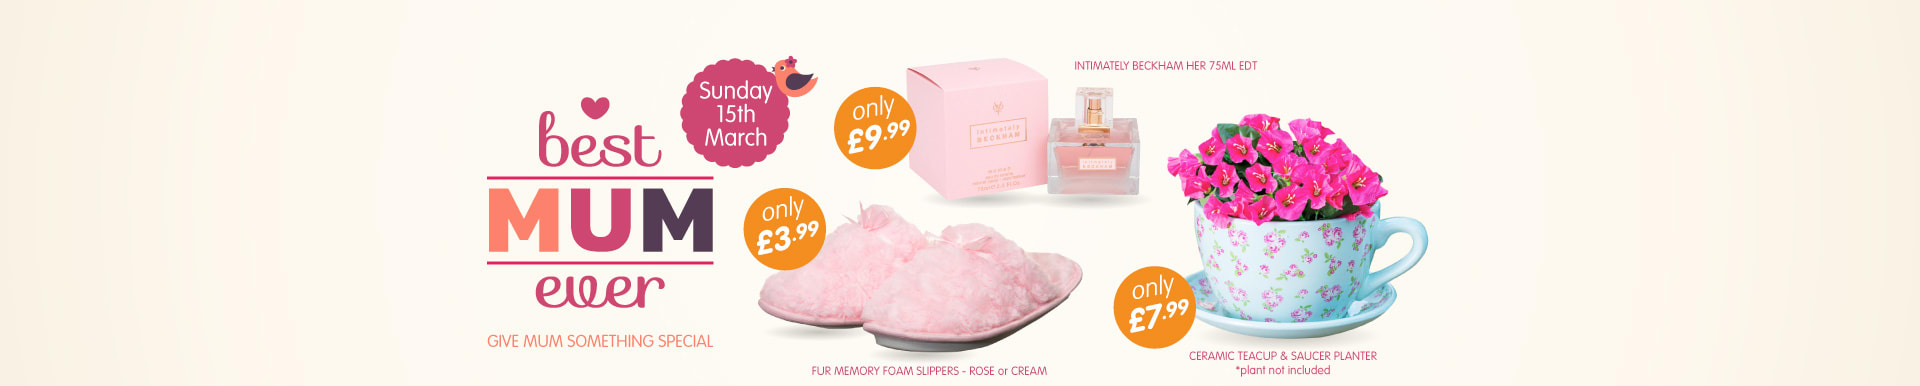 Don't forget Mothers Day on 15th March and treat her to some lovely gifts from B&M Stores.